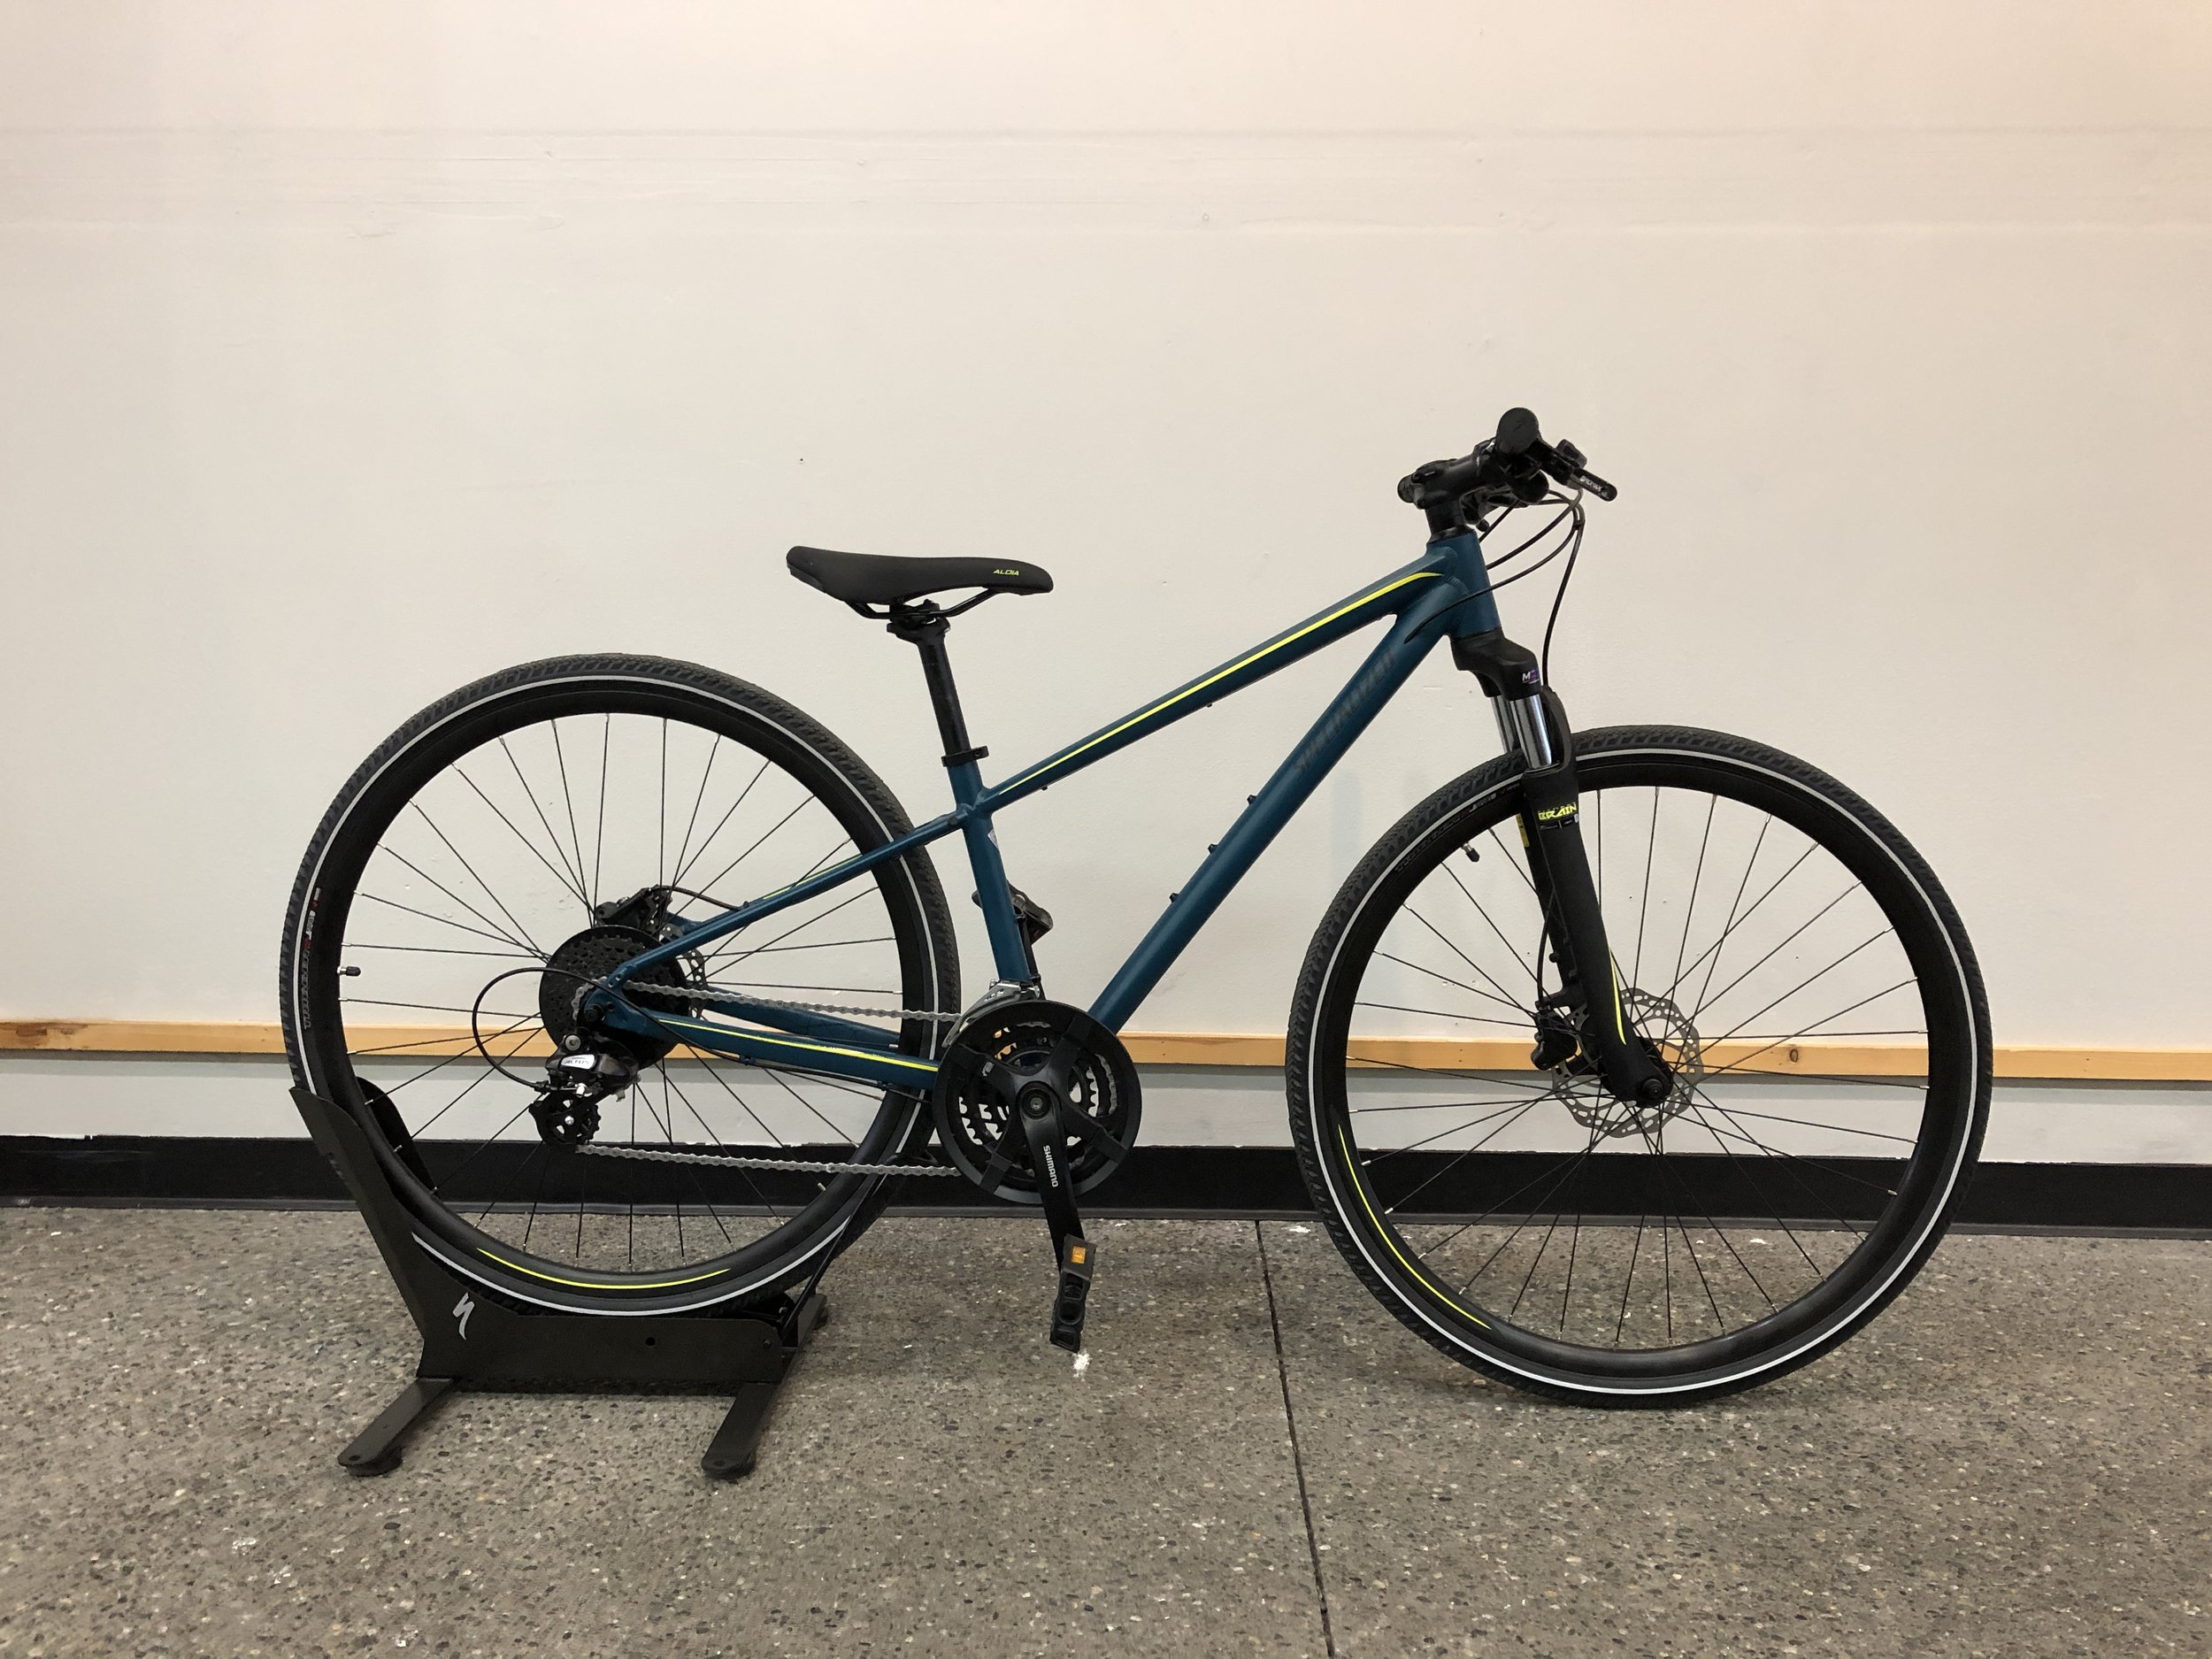 2019 Specialized Ariel Hydraulic Disc $670 - Sizes Available : XS